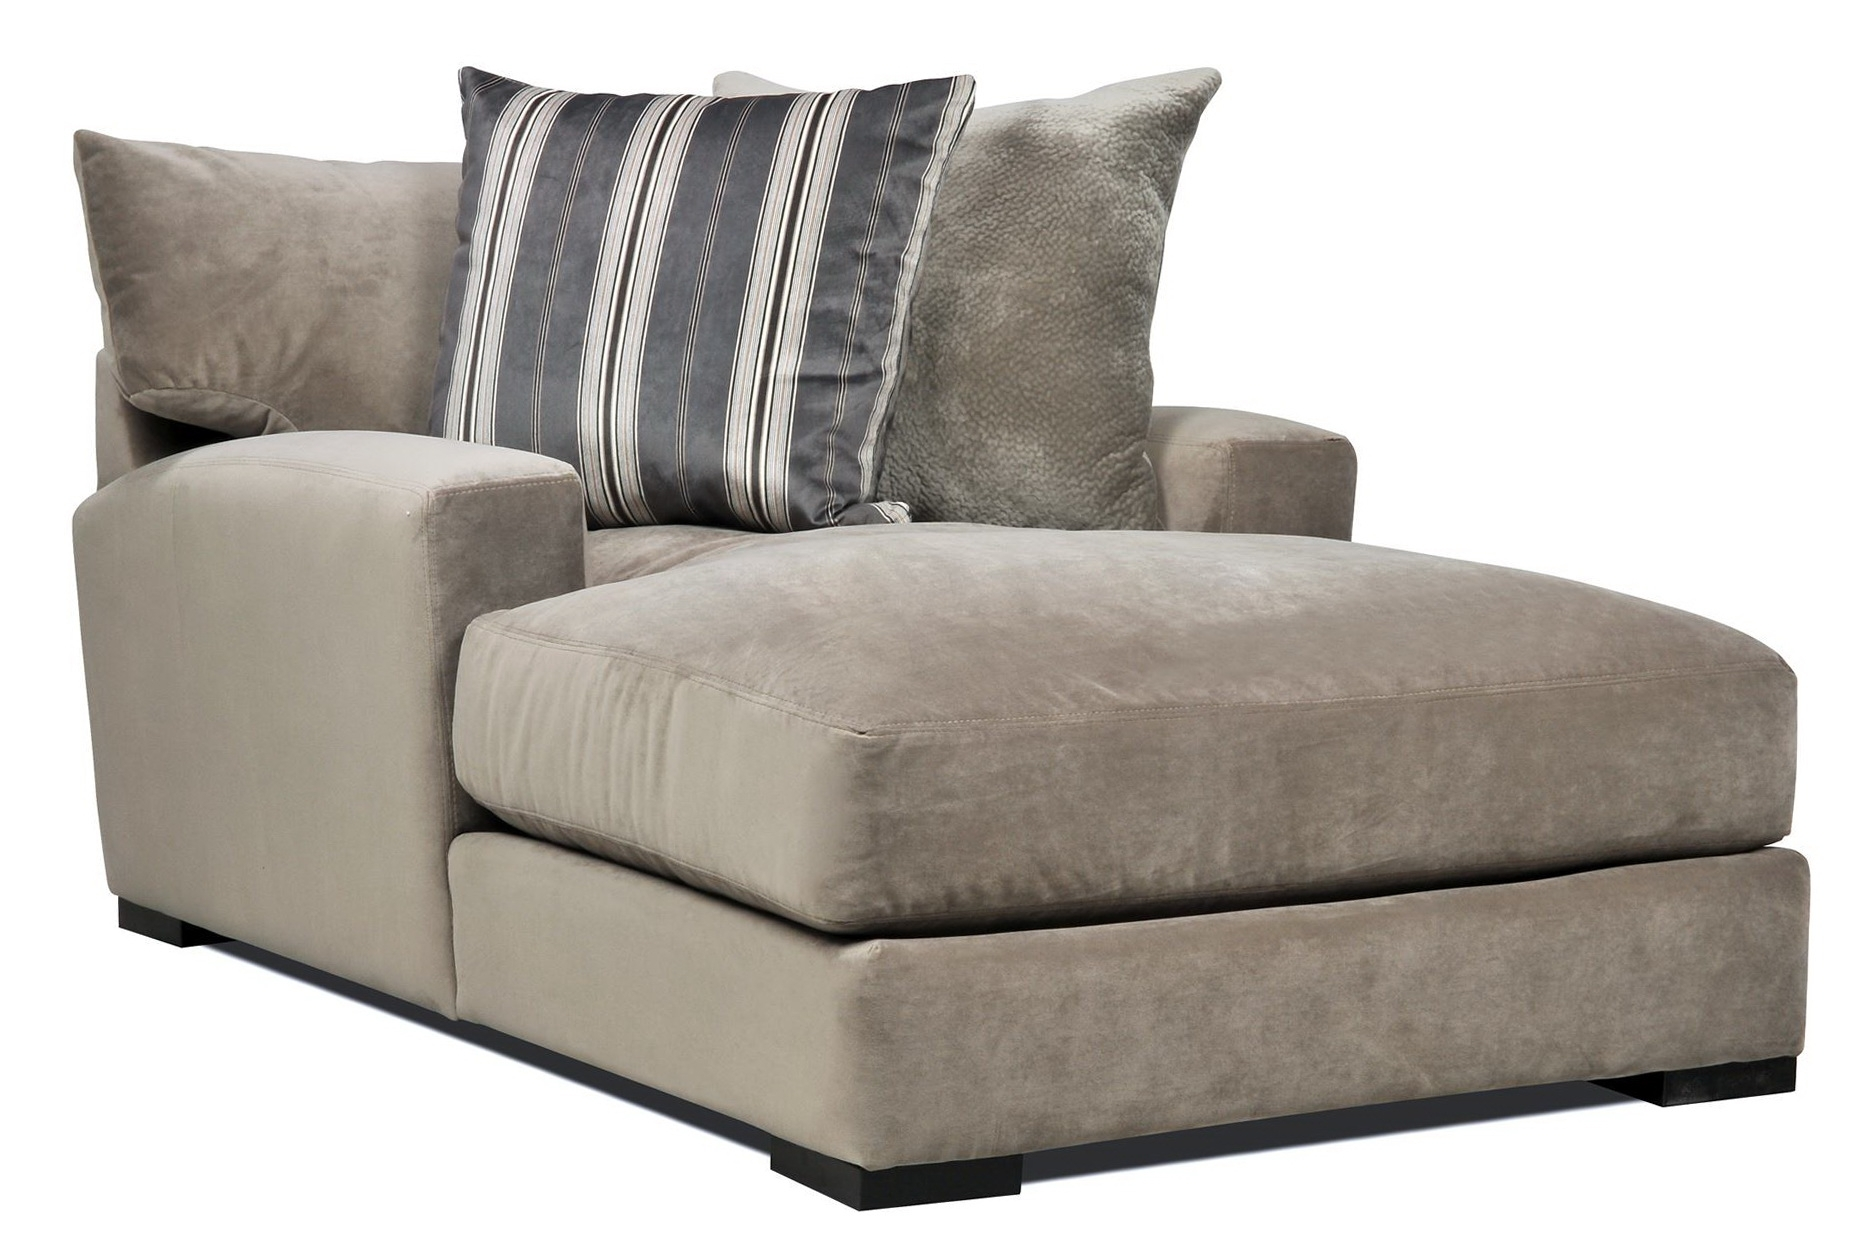 Chaise Lounge Pertaining To Preferred Chaise Lounge Chairs For Sunroom (View 11 of 15)